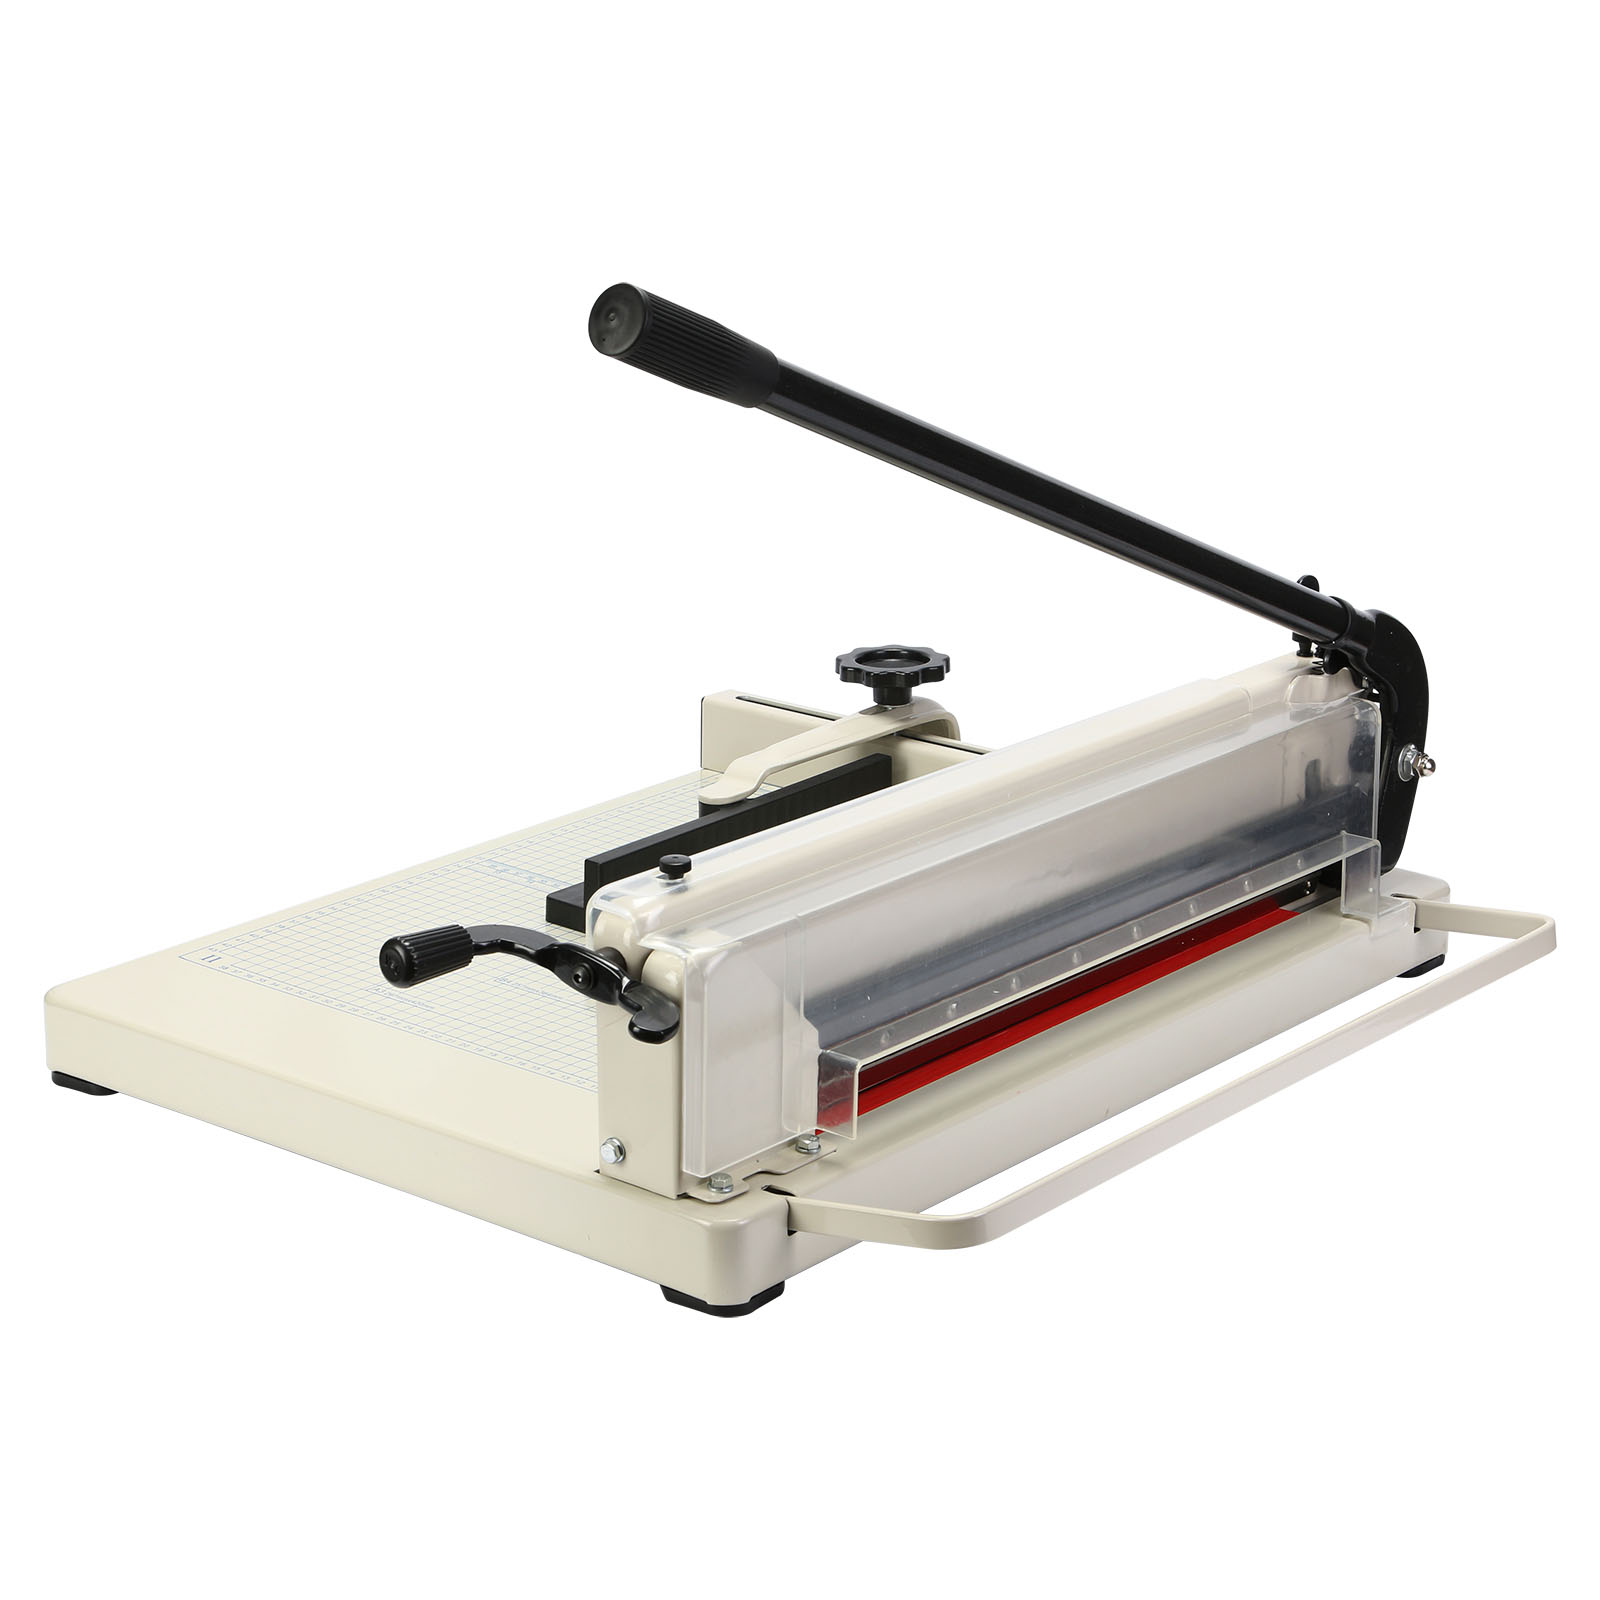 triumph paper cutter Mbm corporation produces document shredders and state-of-the-art paper finishing equipment for the graphics and printing industries.